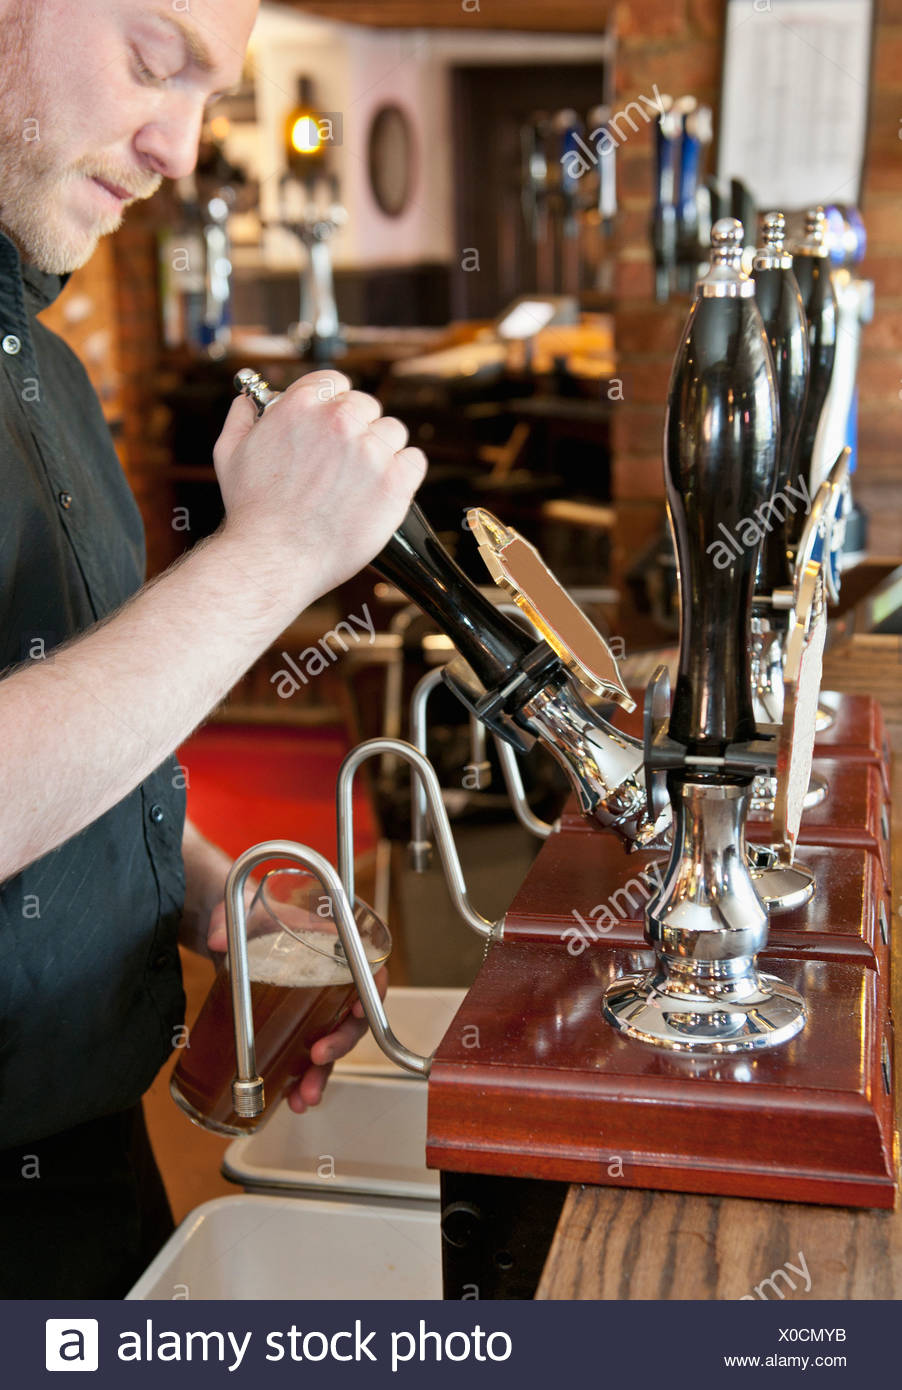 Bartender pouring beer at bar - Stock Image